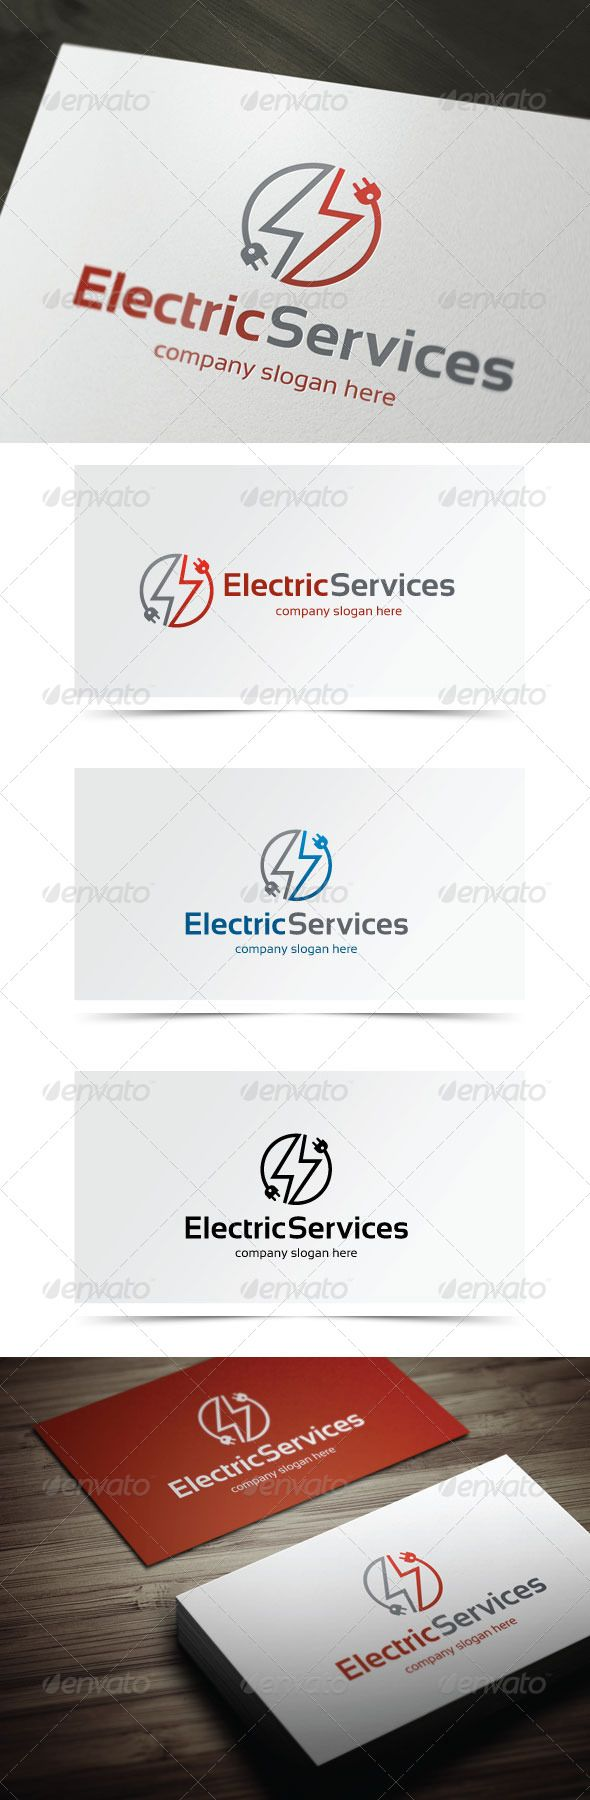 Electric Services  #energy #fire #fix • Available here → http://graphicriver.net/item/electric-services/5698659?s_rank=92&ref=pxcr